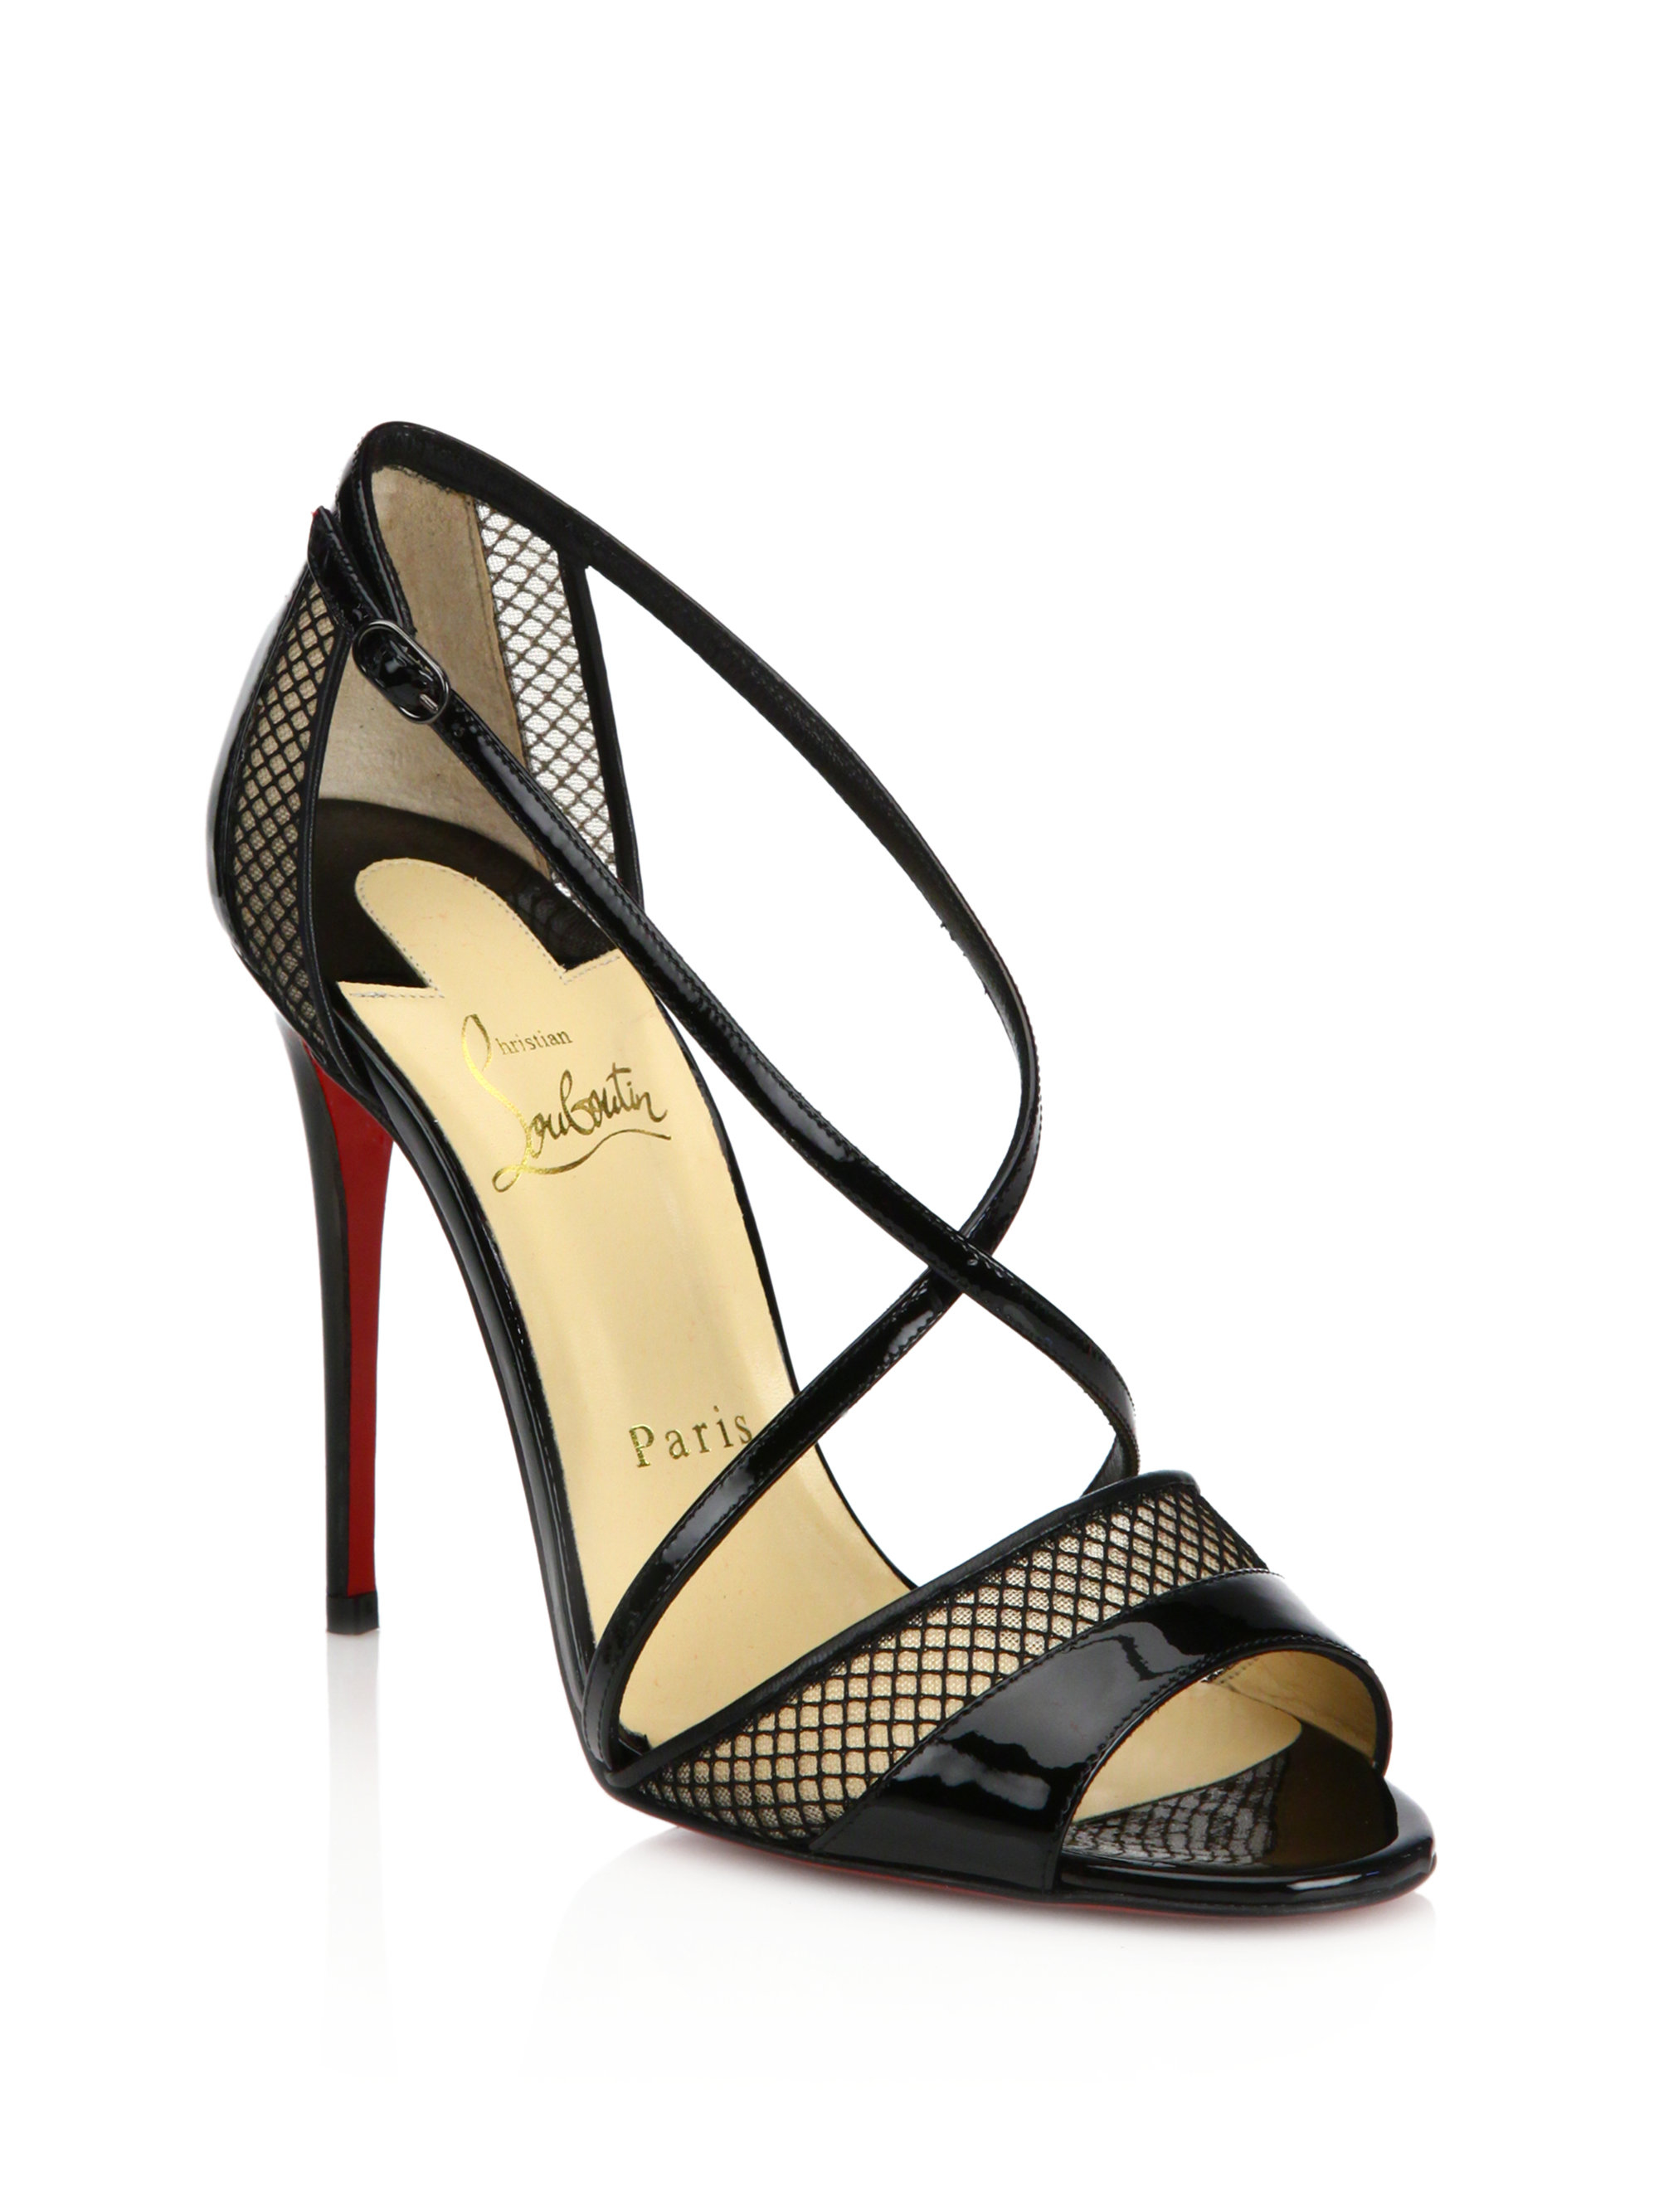 christian louboutin black patent leather sandals